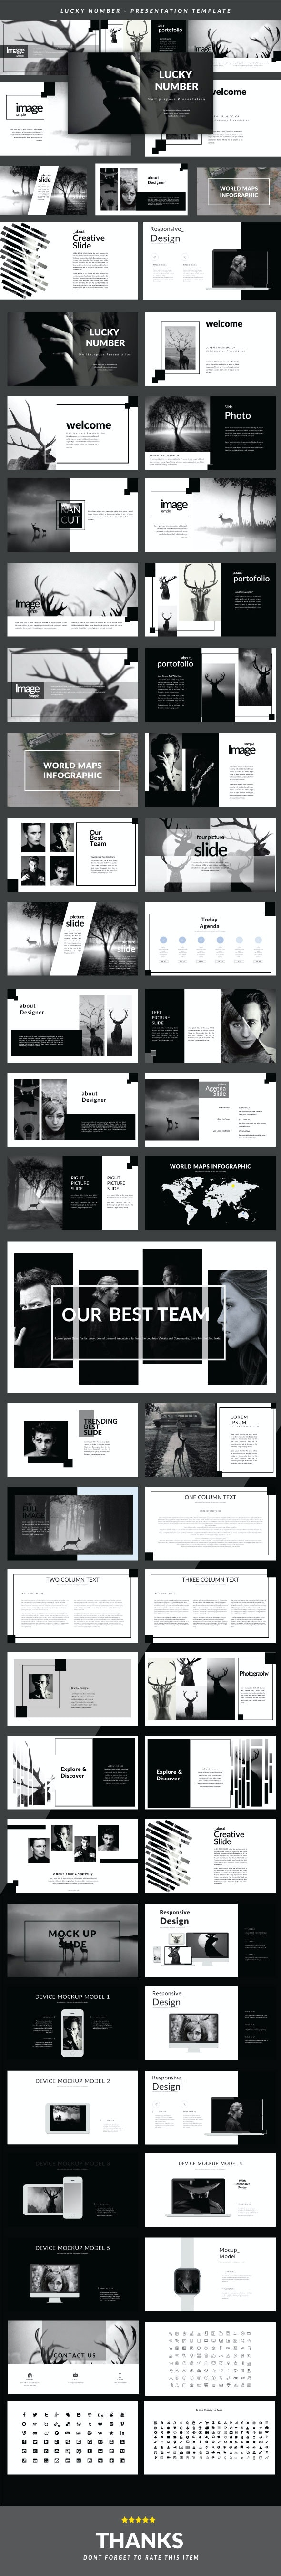 Lucky Number Presentation Templates - PowerPoint Templates Presentation Templates